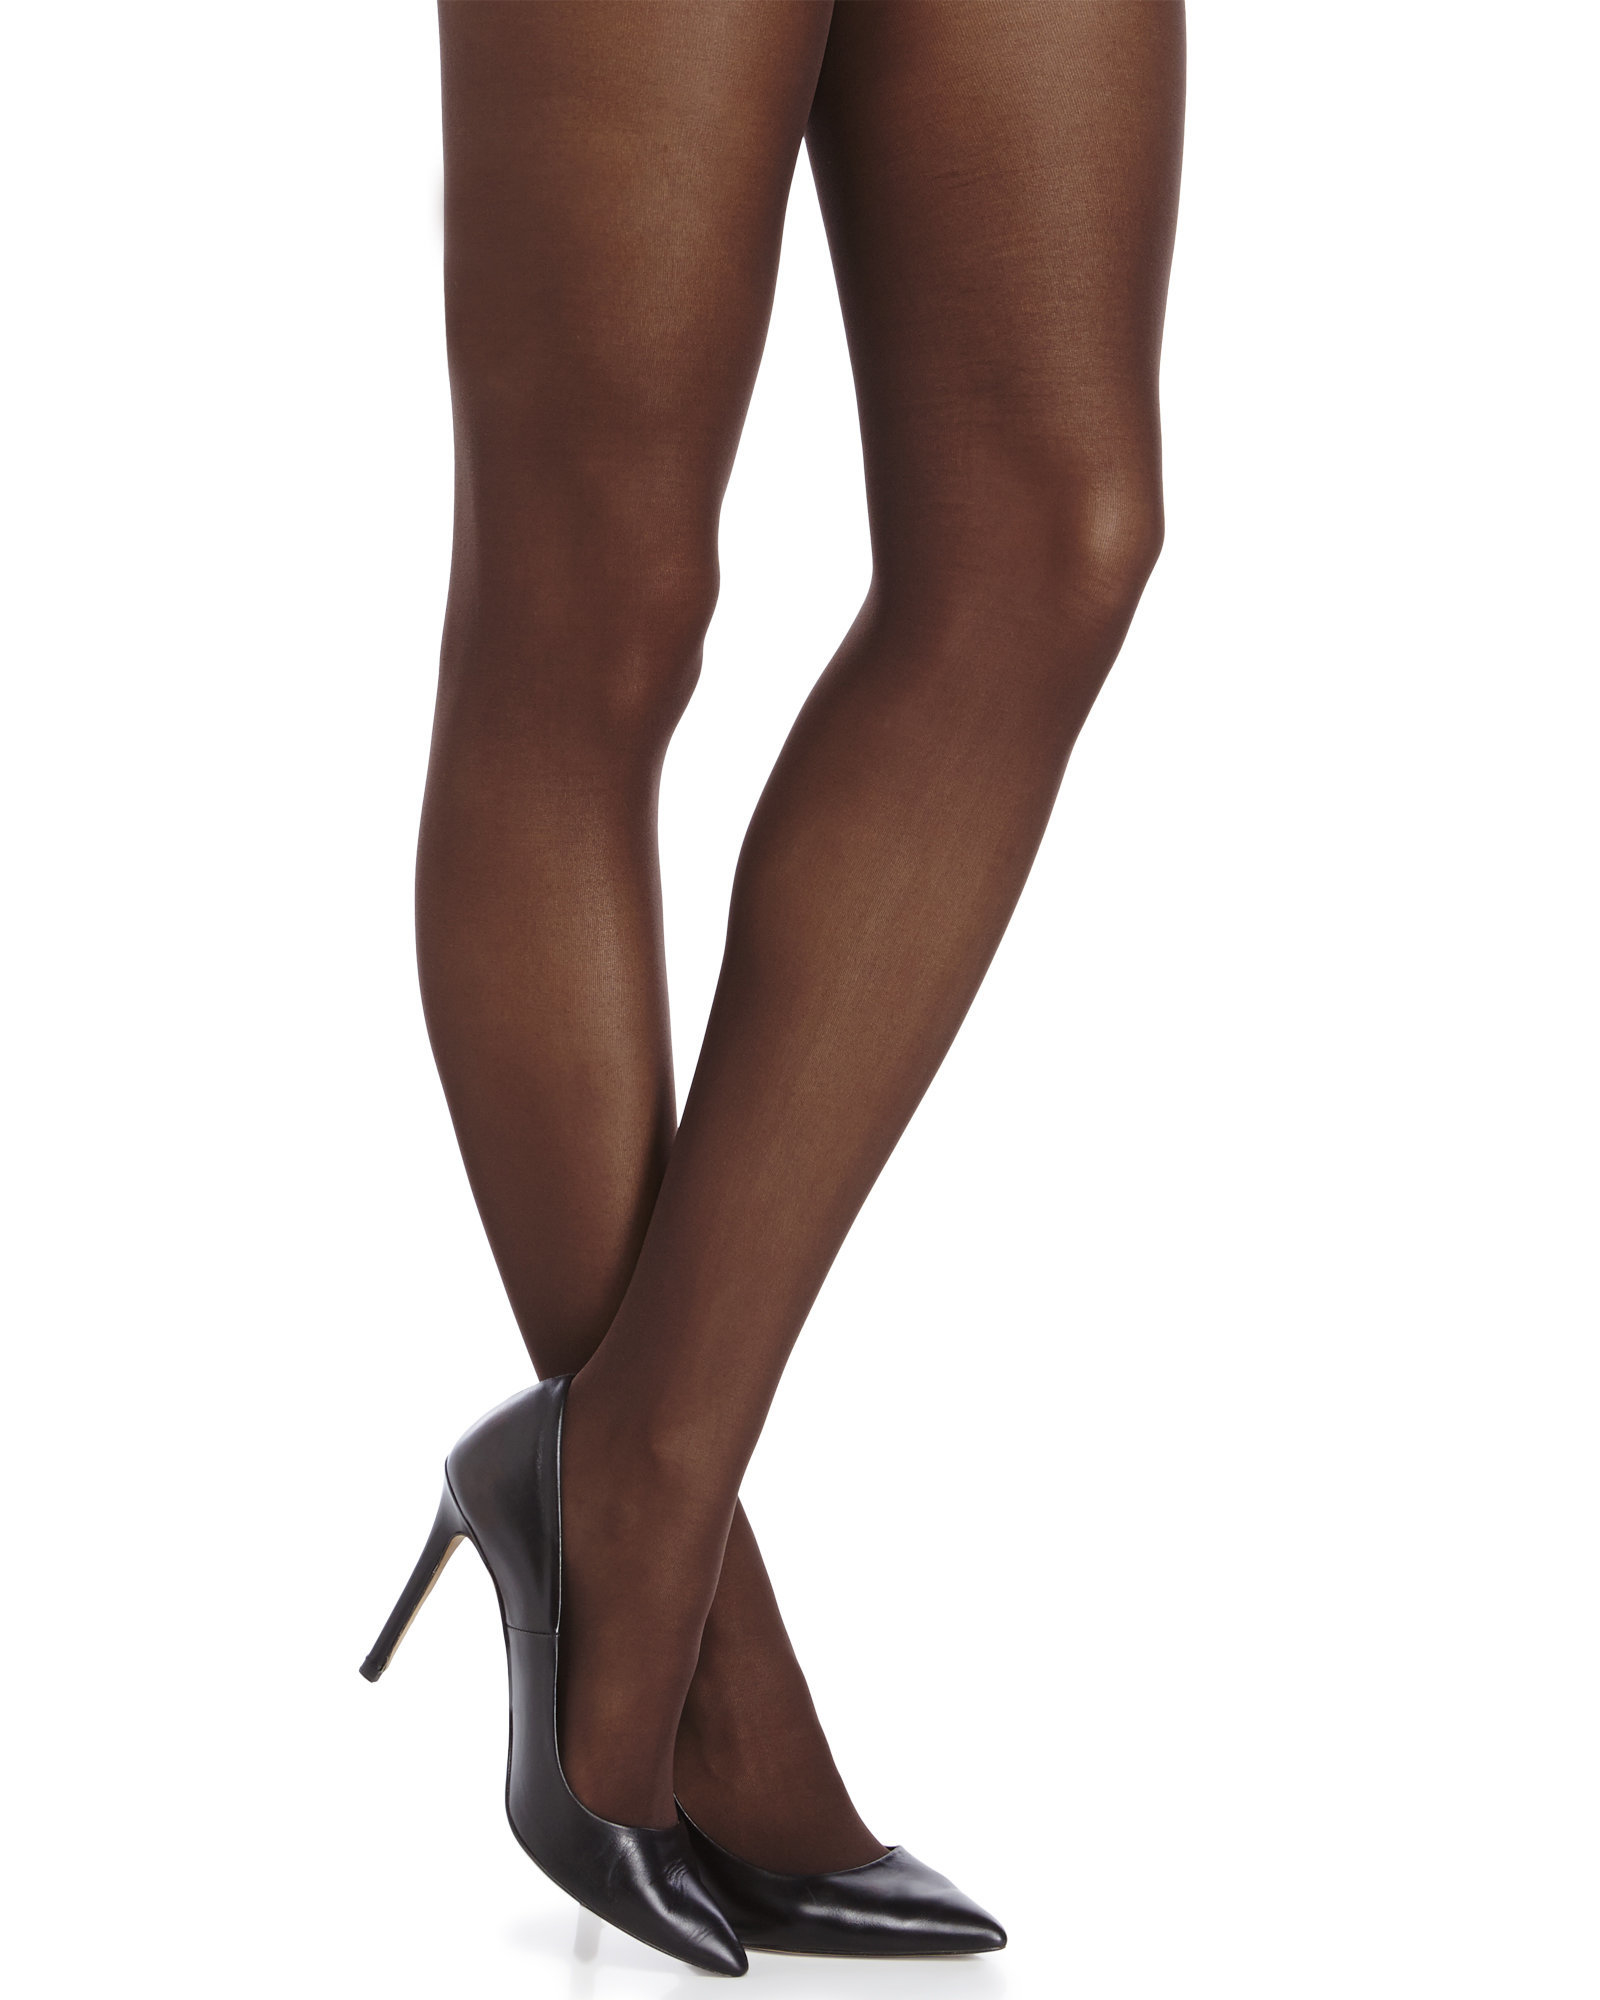 Try our Women's Opaque Control Top Tights at Lands' End. Everything we sell is Guaranteed. Period.® Since